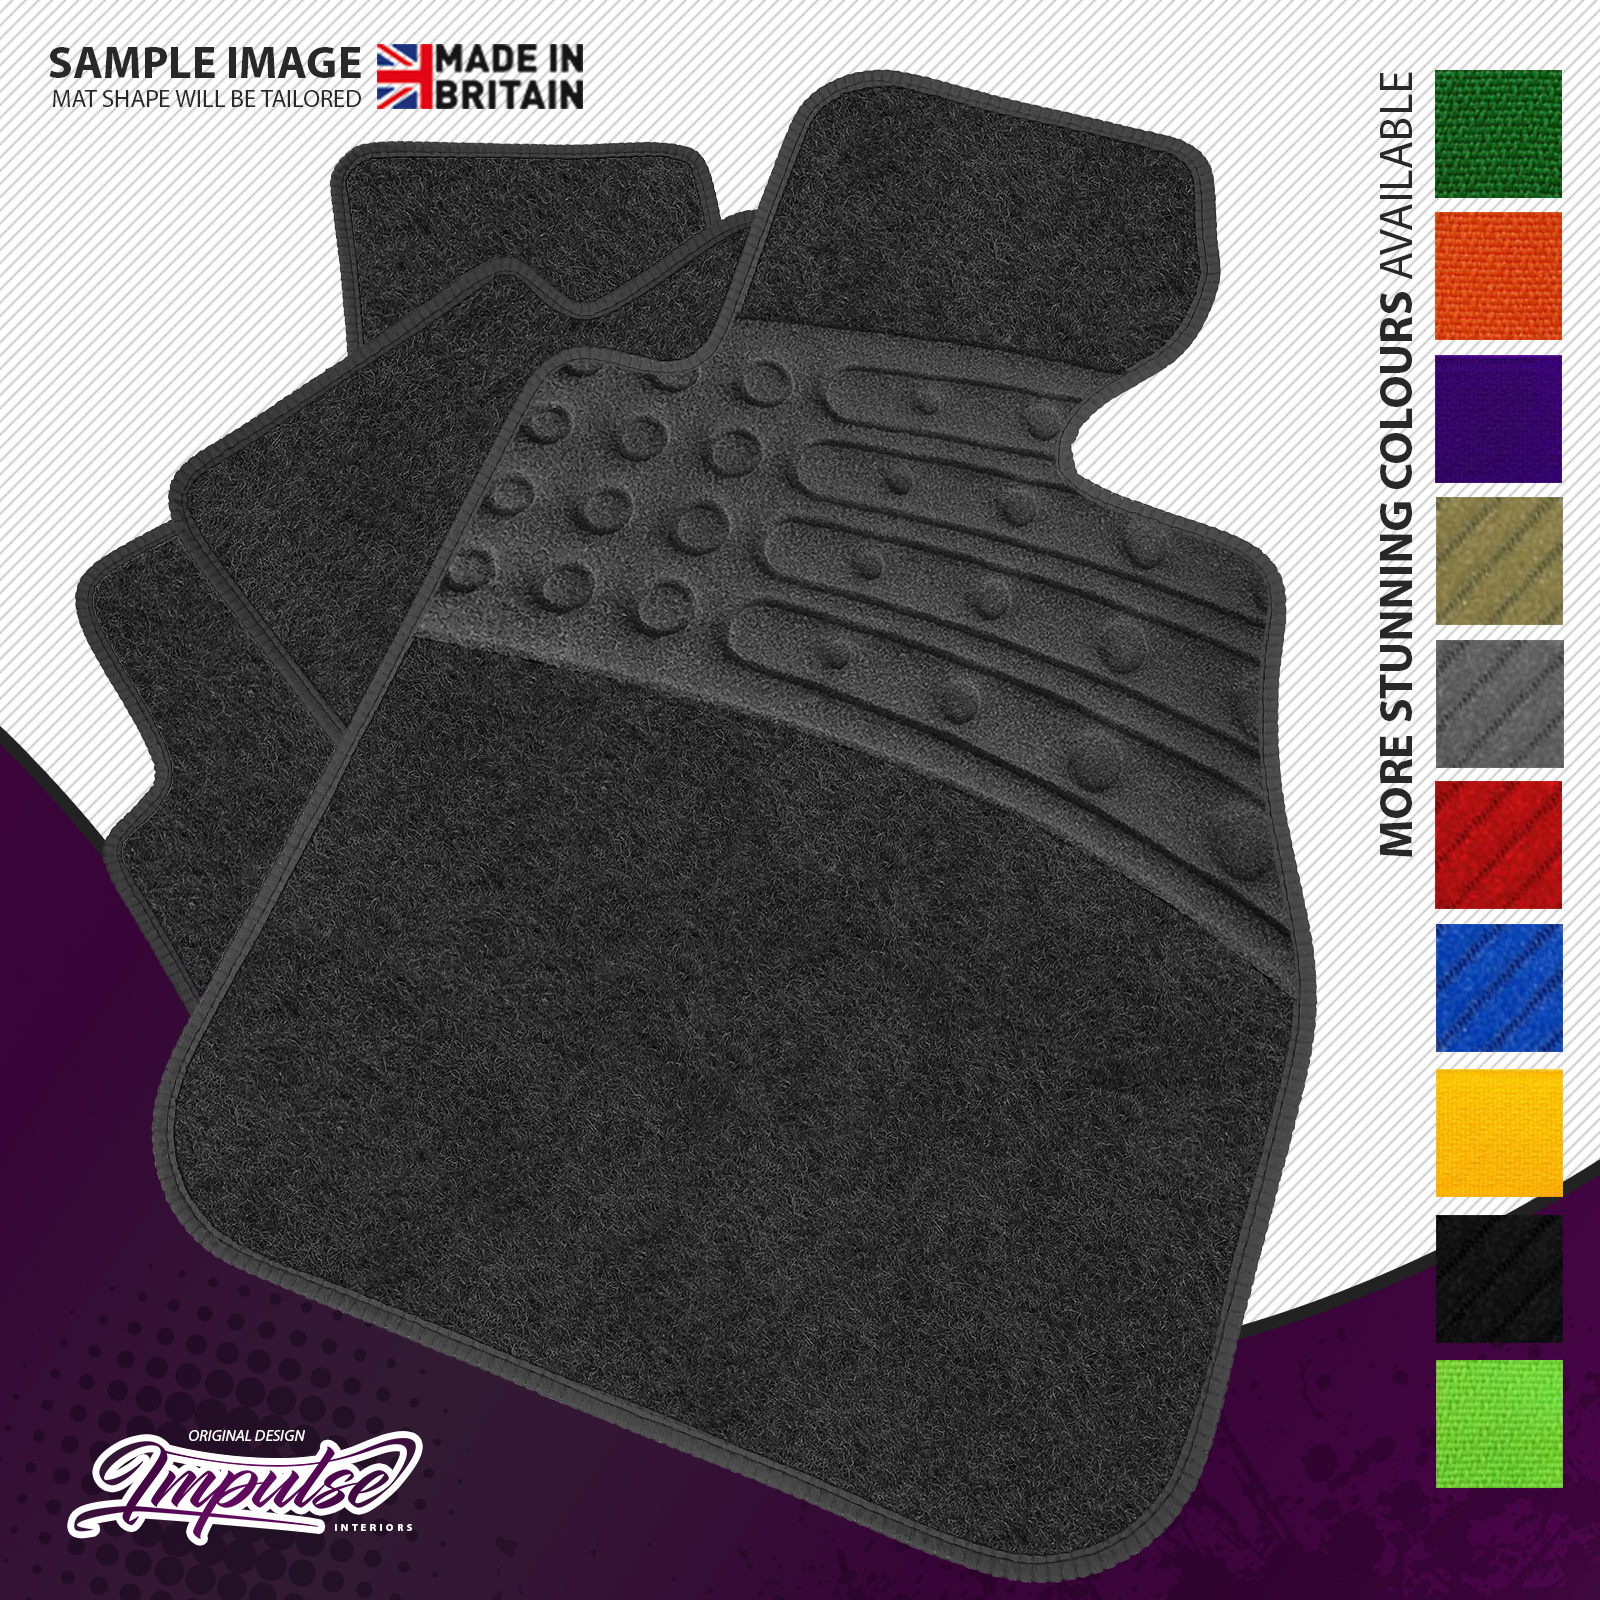 Diamond Finish With Durable Beige Ribbed Trim Luxury Rubber Car Mats for XC90 2015+